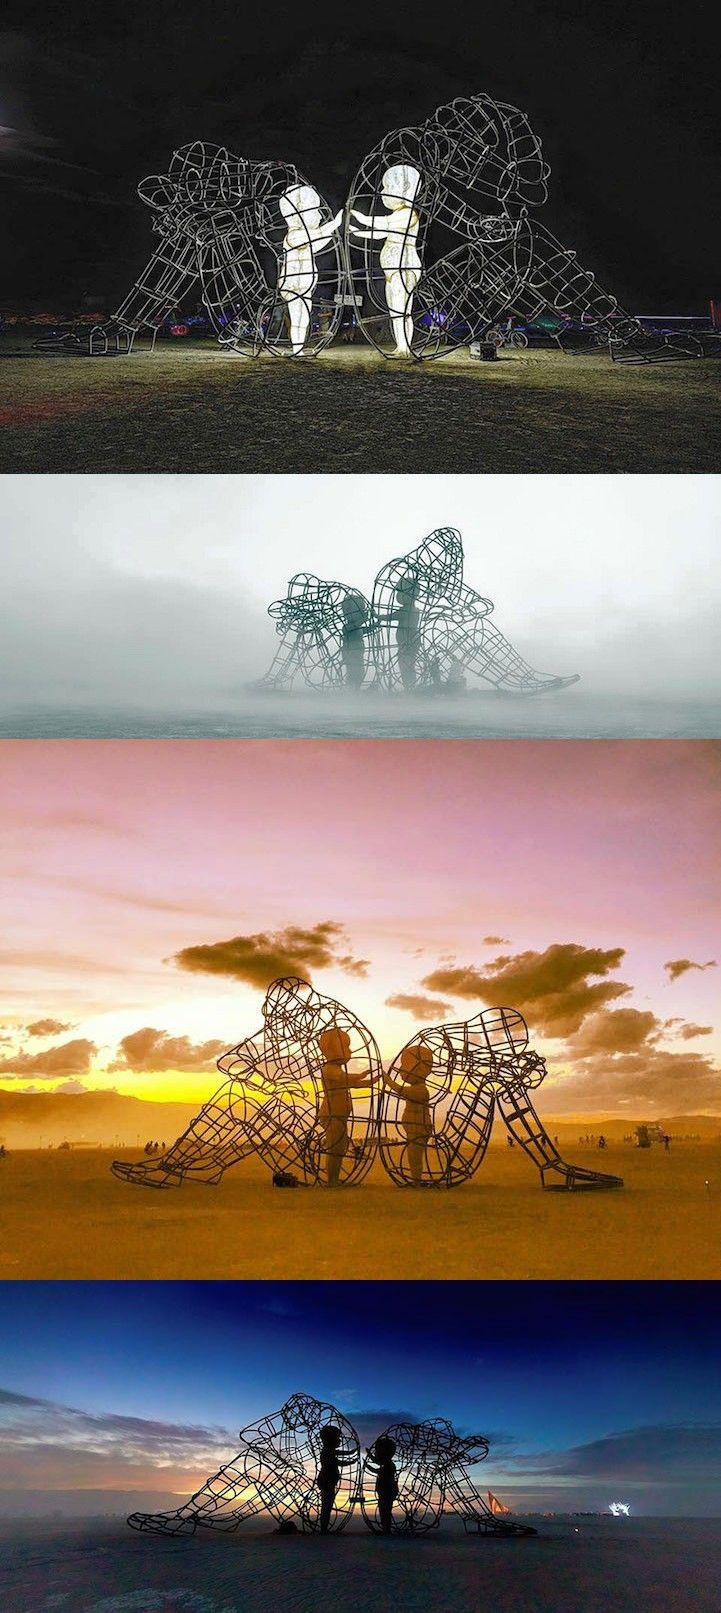 Ukrainian artist Alexander Milov delighted Burning Man's festival-goers with a piece that allowed them to reconnect with their inner child.